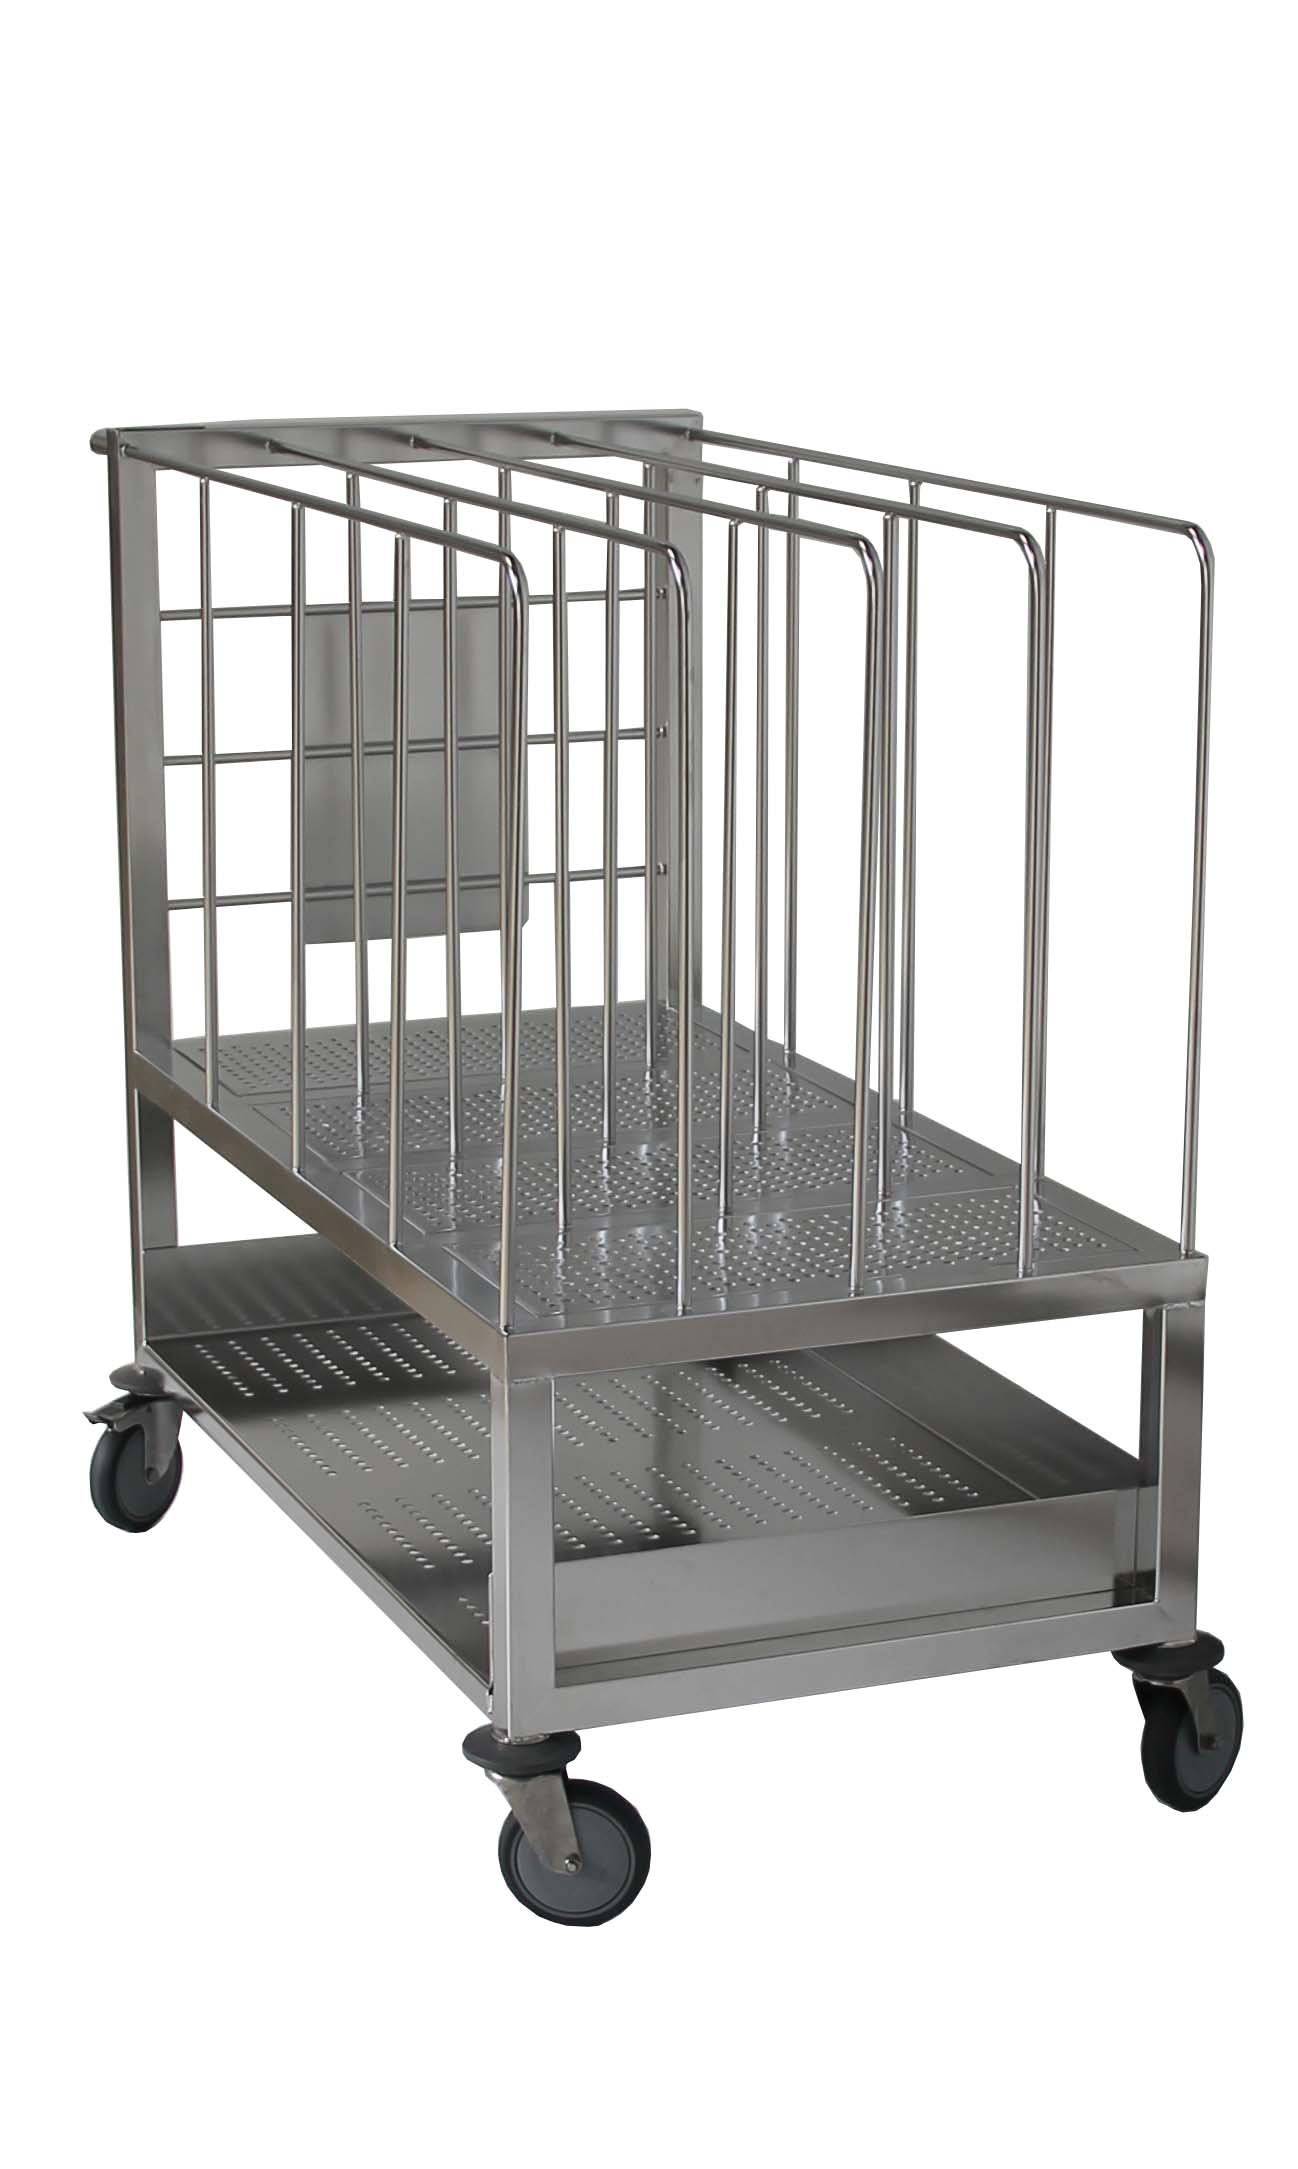 Chariot Transport Intercalaire Vertical Pour Salle Blanche